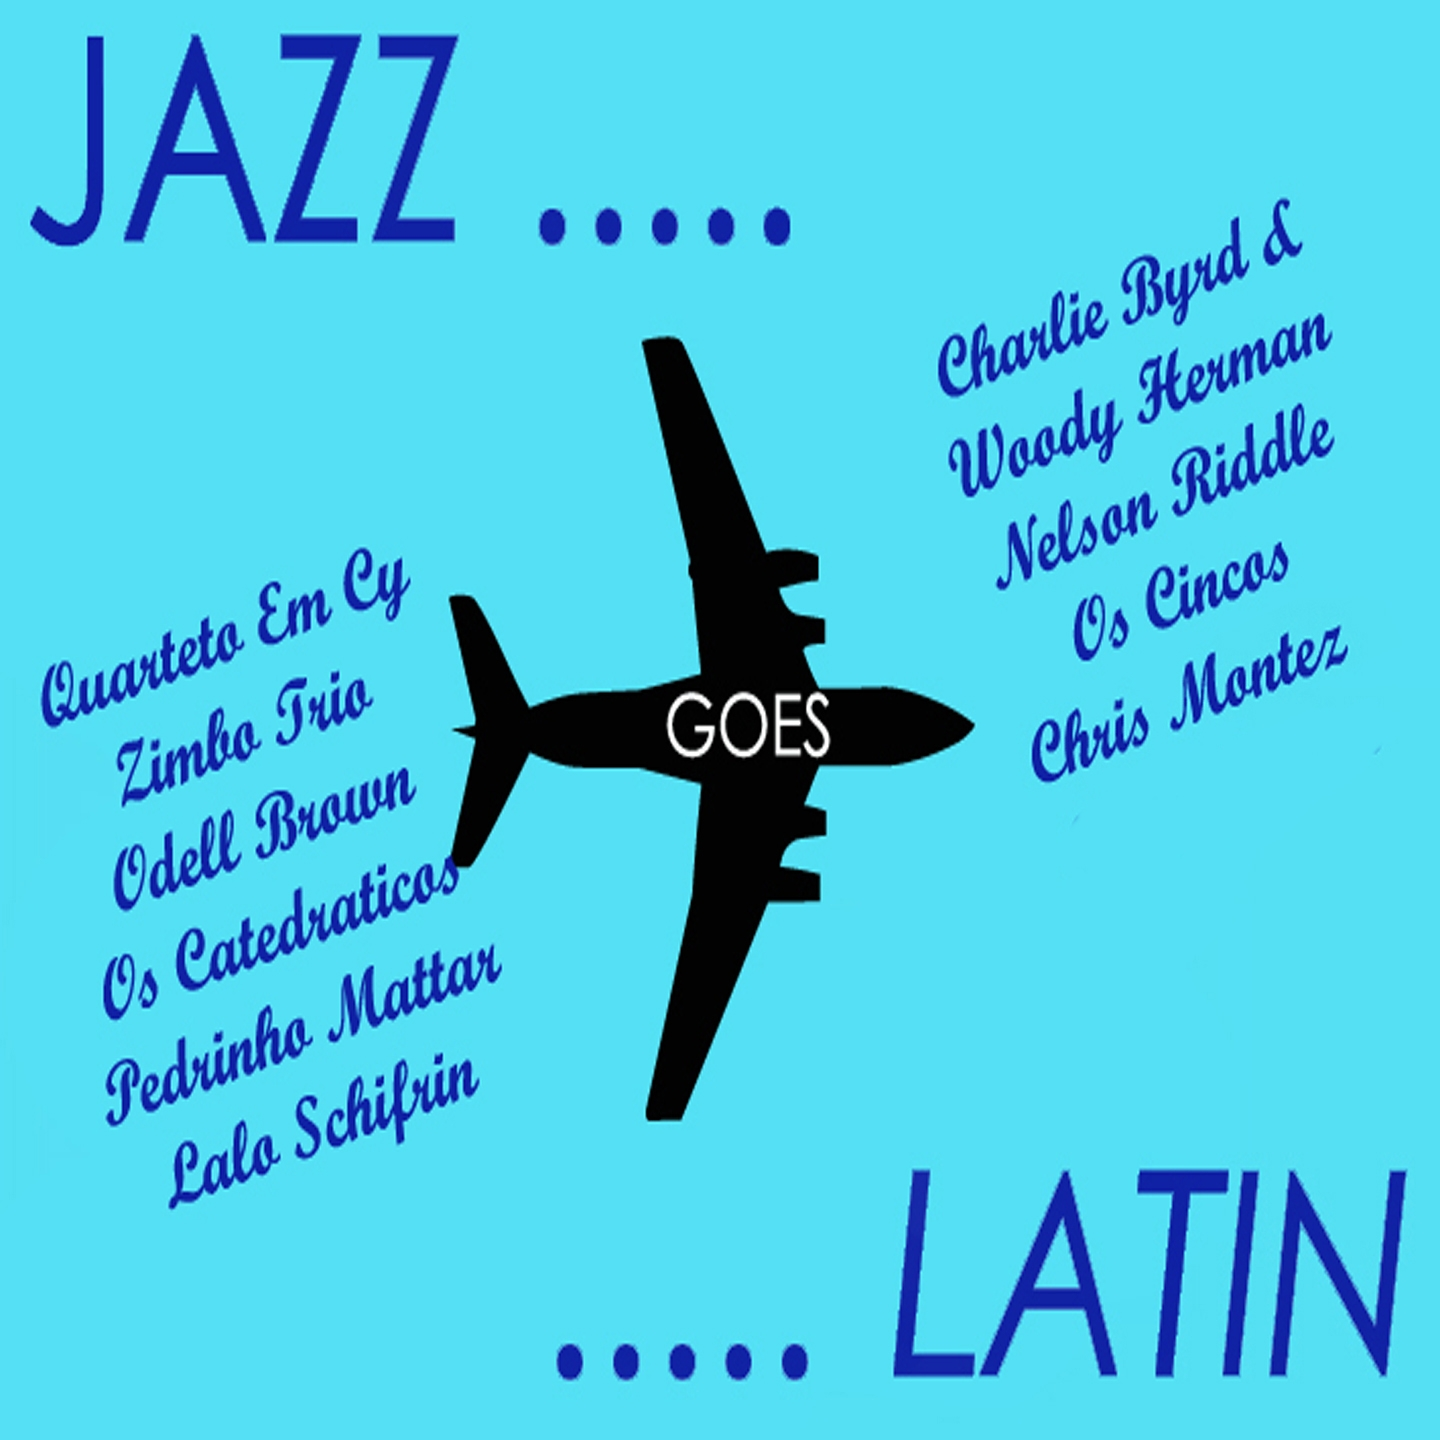 Jazz Goes Latin! Bossa Nova And Jazz Samba Rhythms